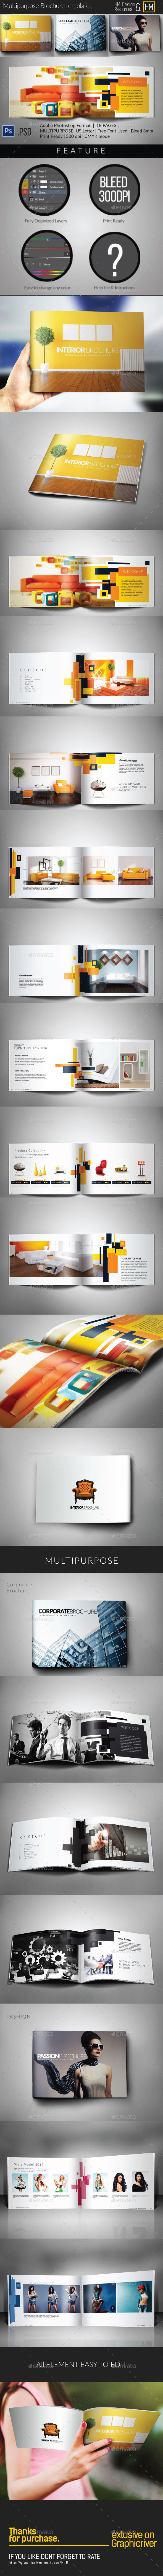 GraphicRiver Multipurpose Catalogs Brochure Portofolio 11139758